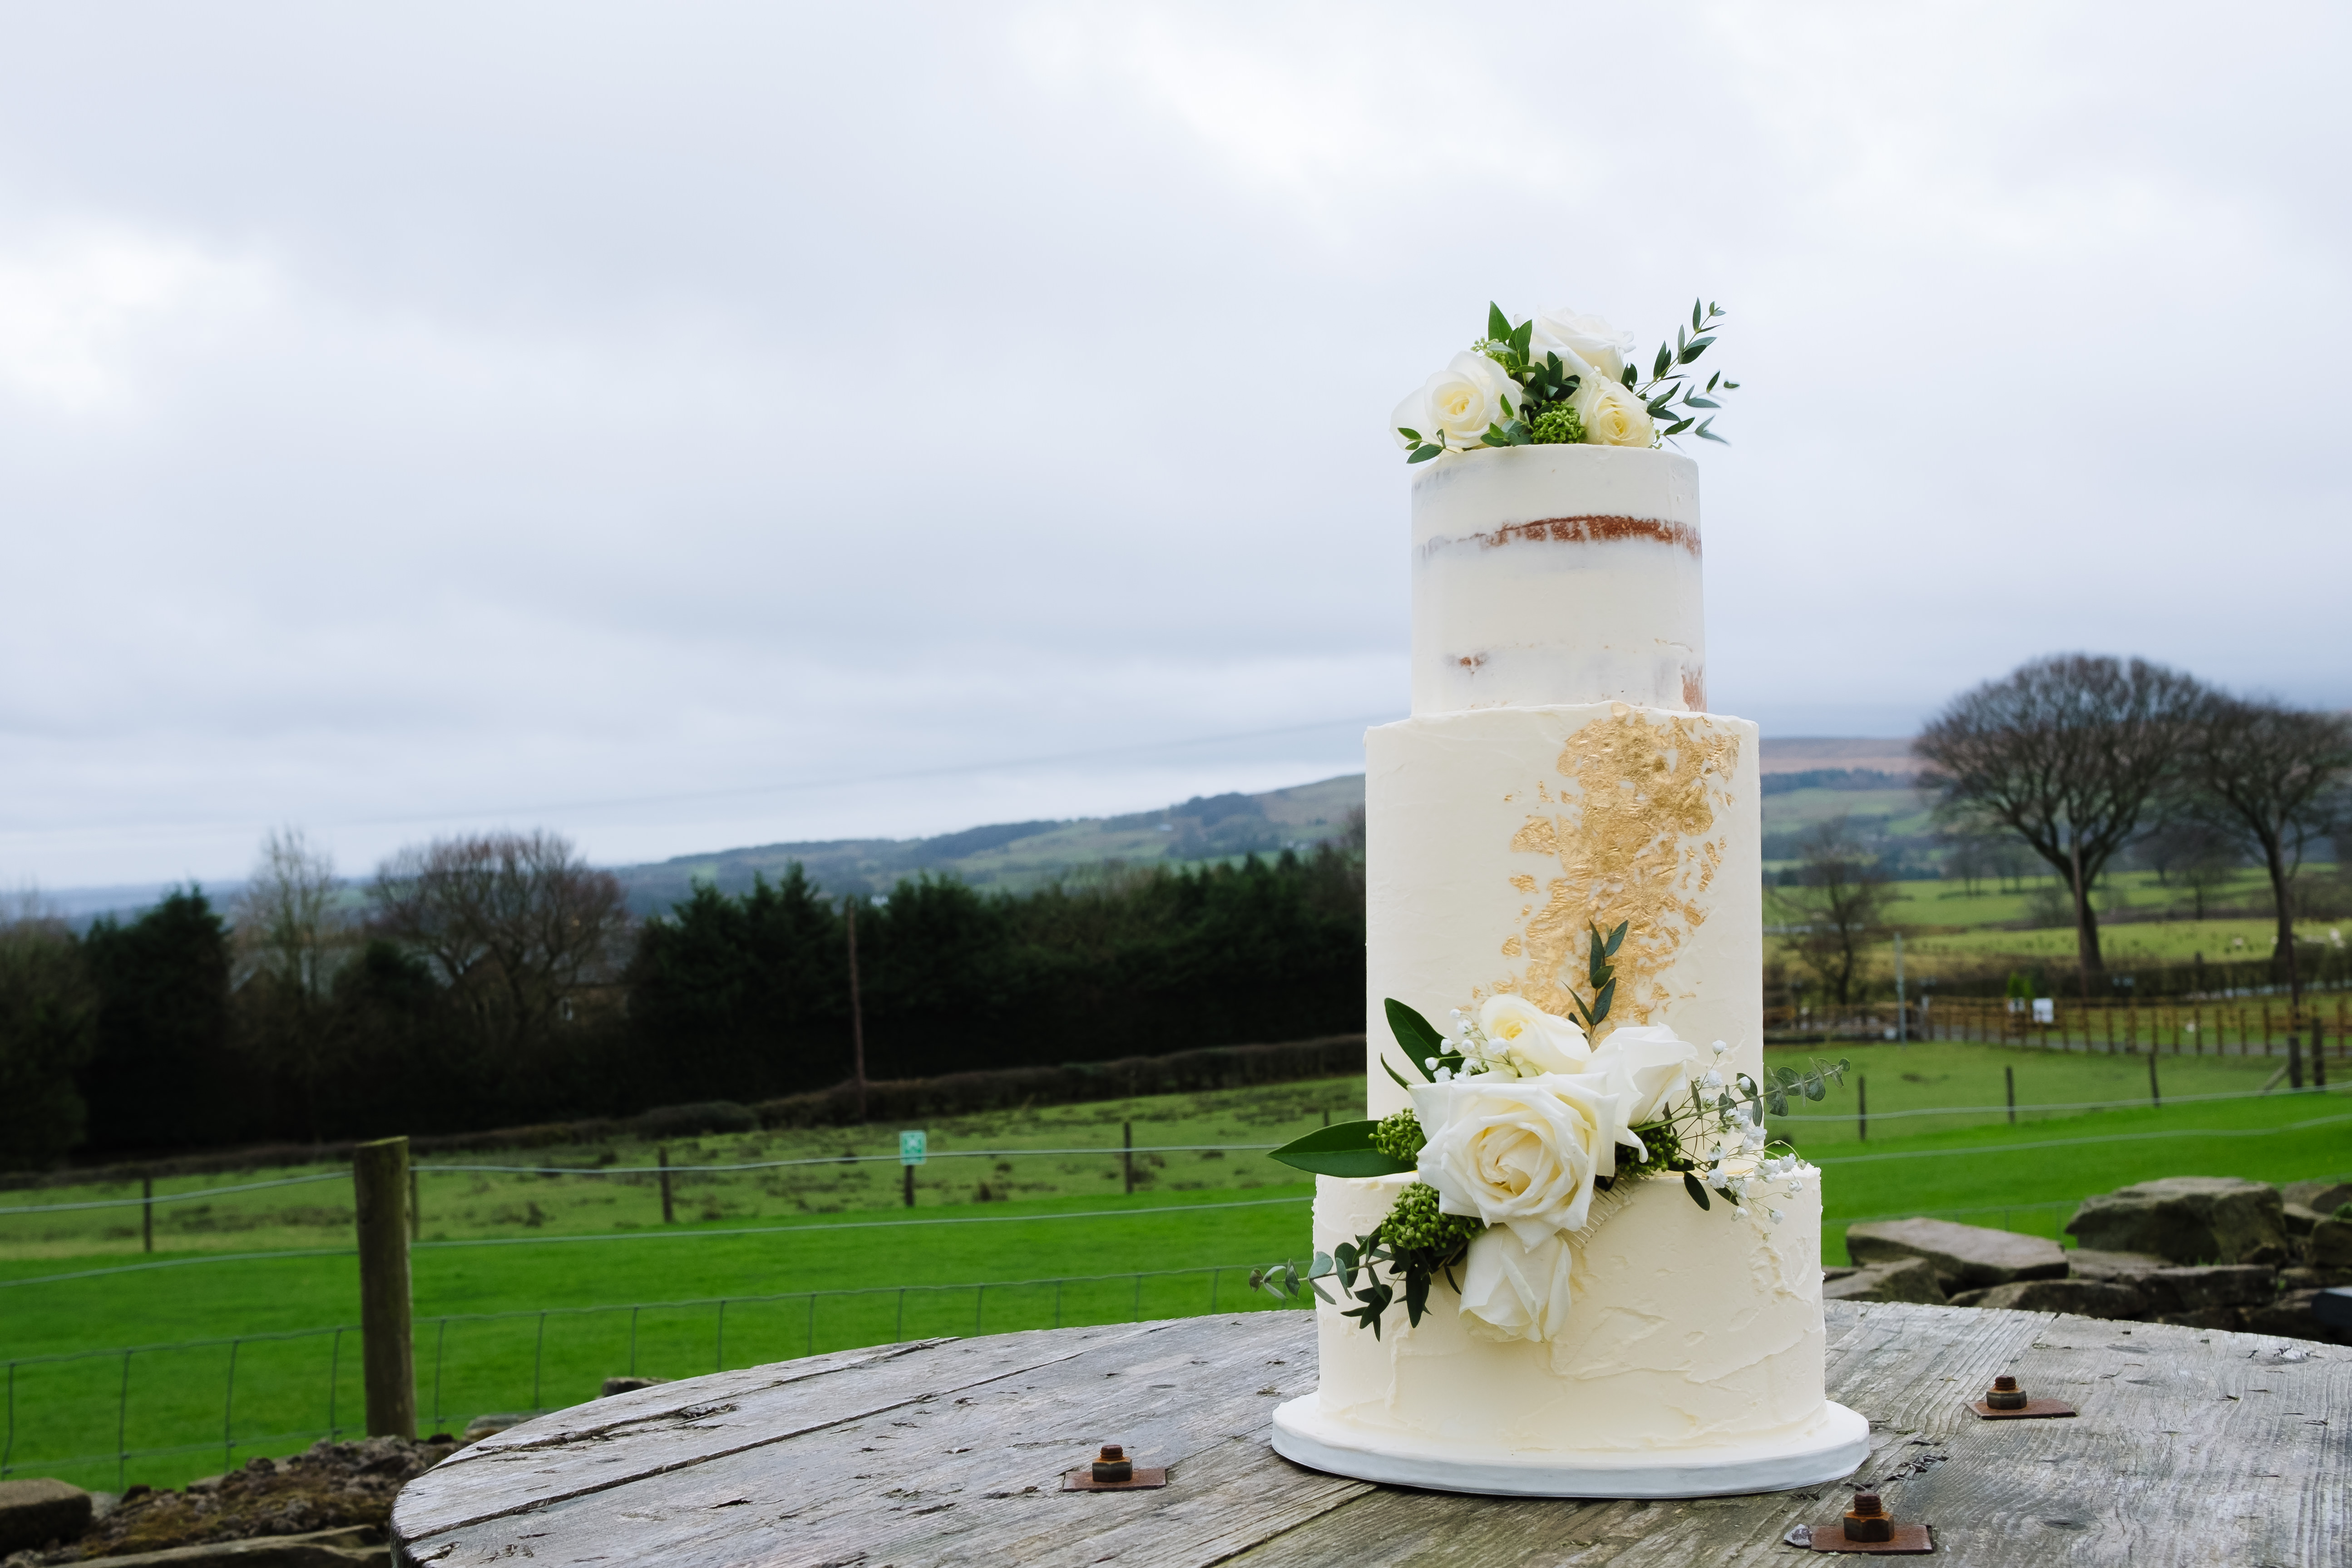 Semi Naked rustic wedding cake - Sugar Wishes Cakes Lancashire